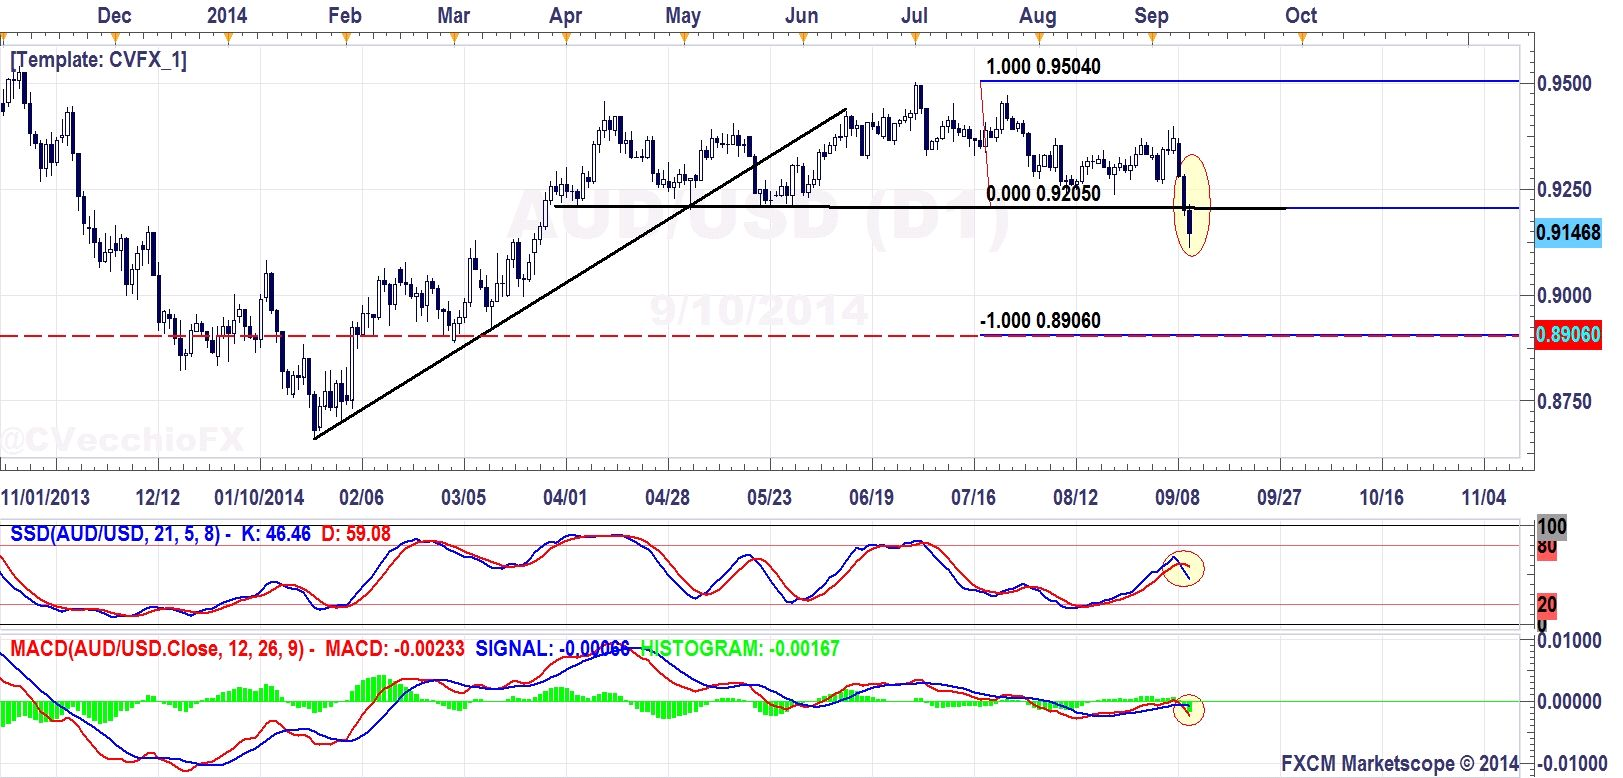 Aus Euro Aud Usd Top Measures To 8906 Eur Jpy Revisits 138 05 Resistance